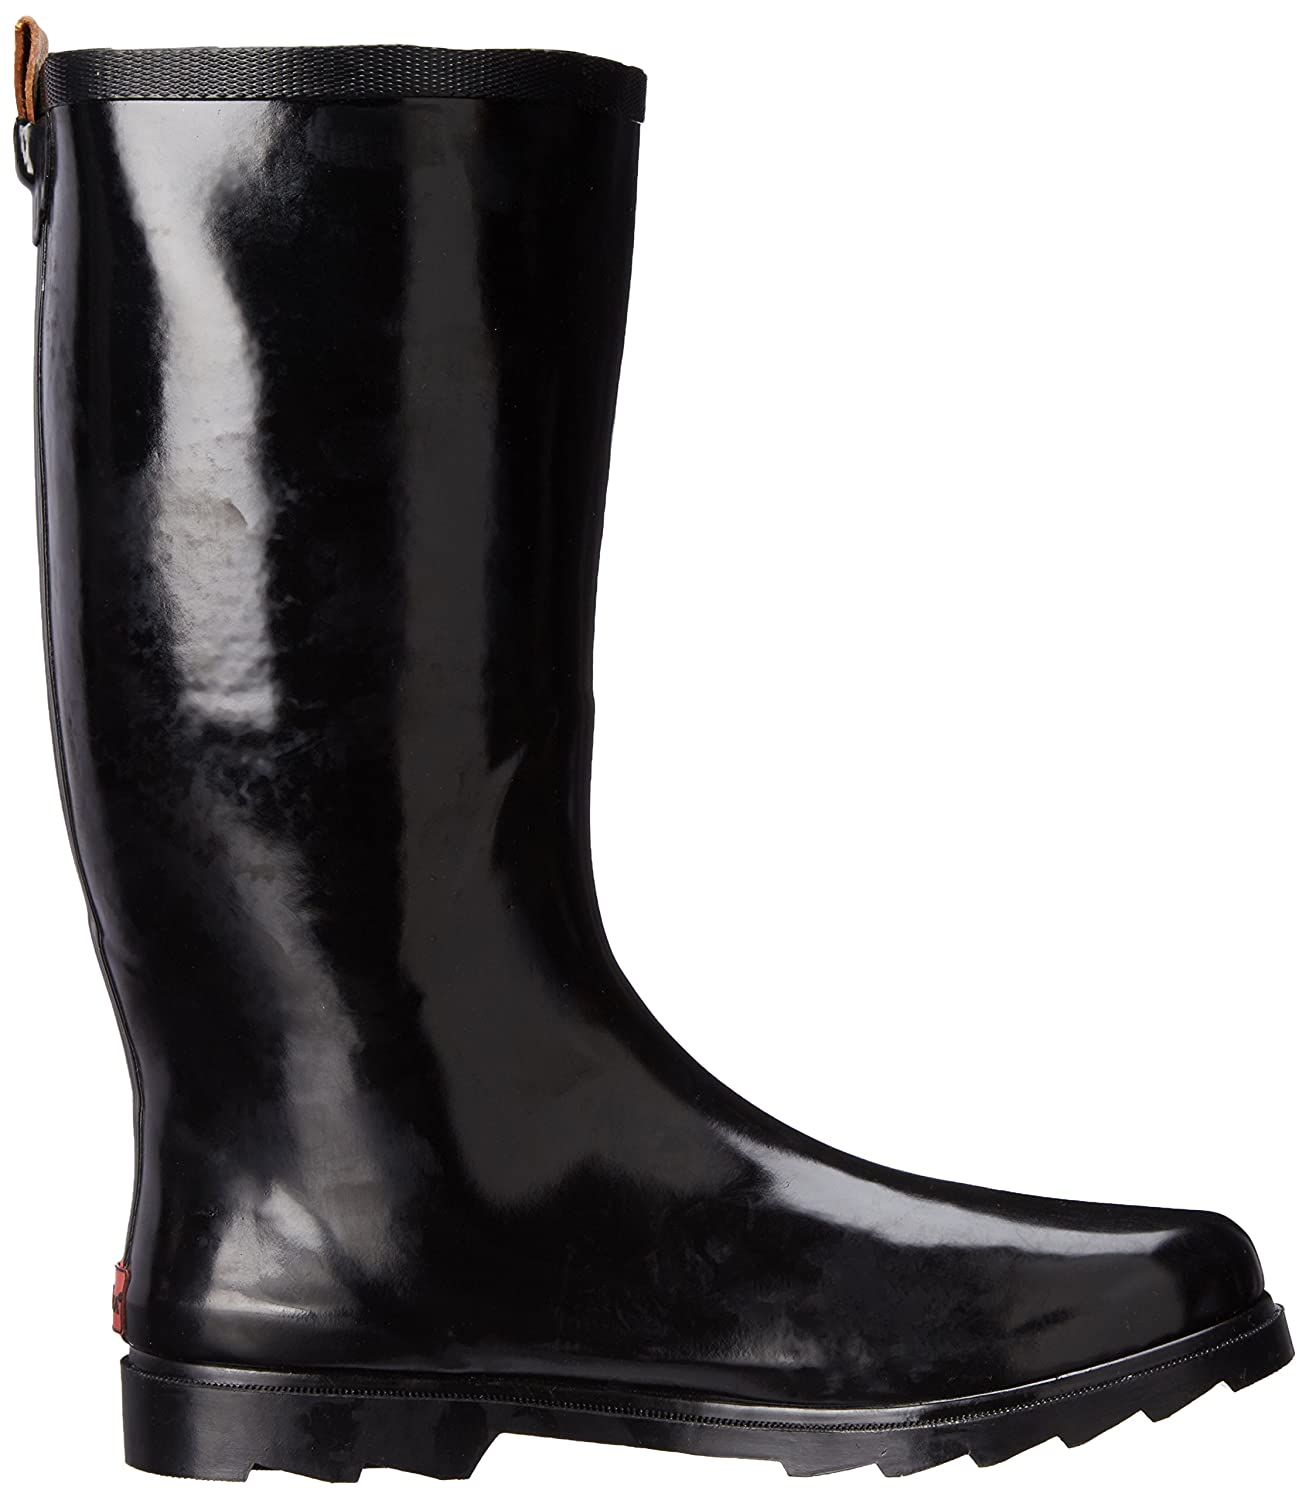 Chooka Women's Tall Rain B(M) Boot B00J57WAT8 8 B(M) Rain US|Black/Shiny c07e1b